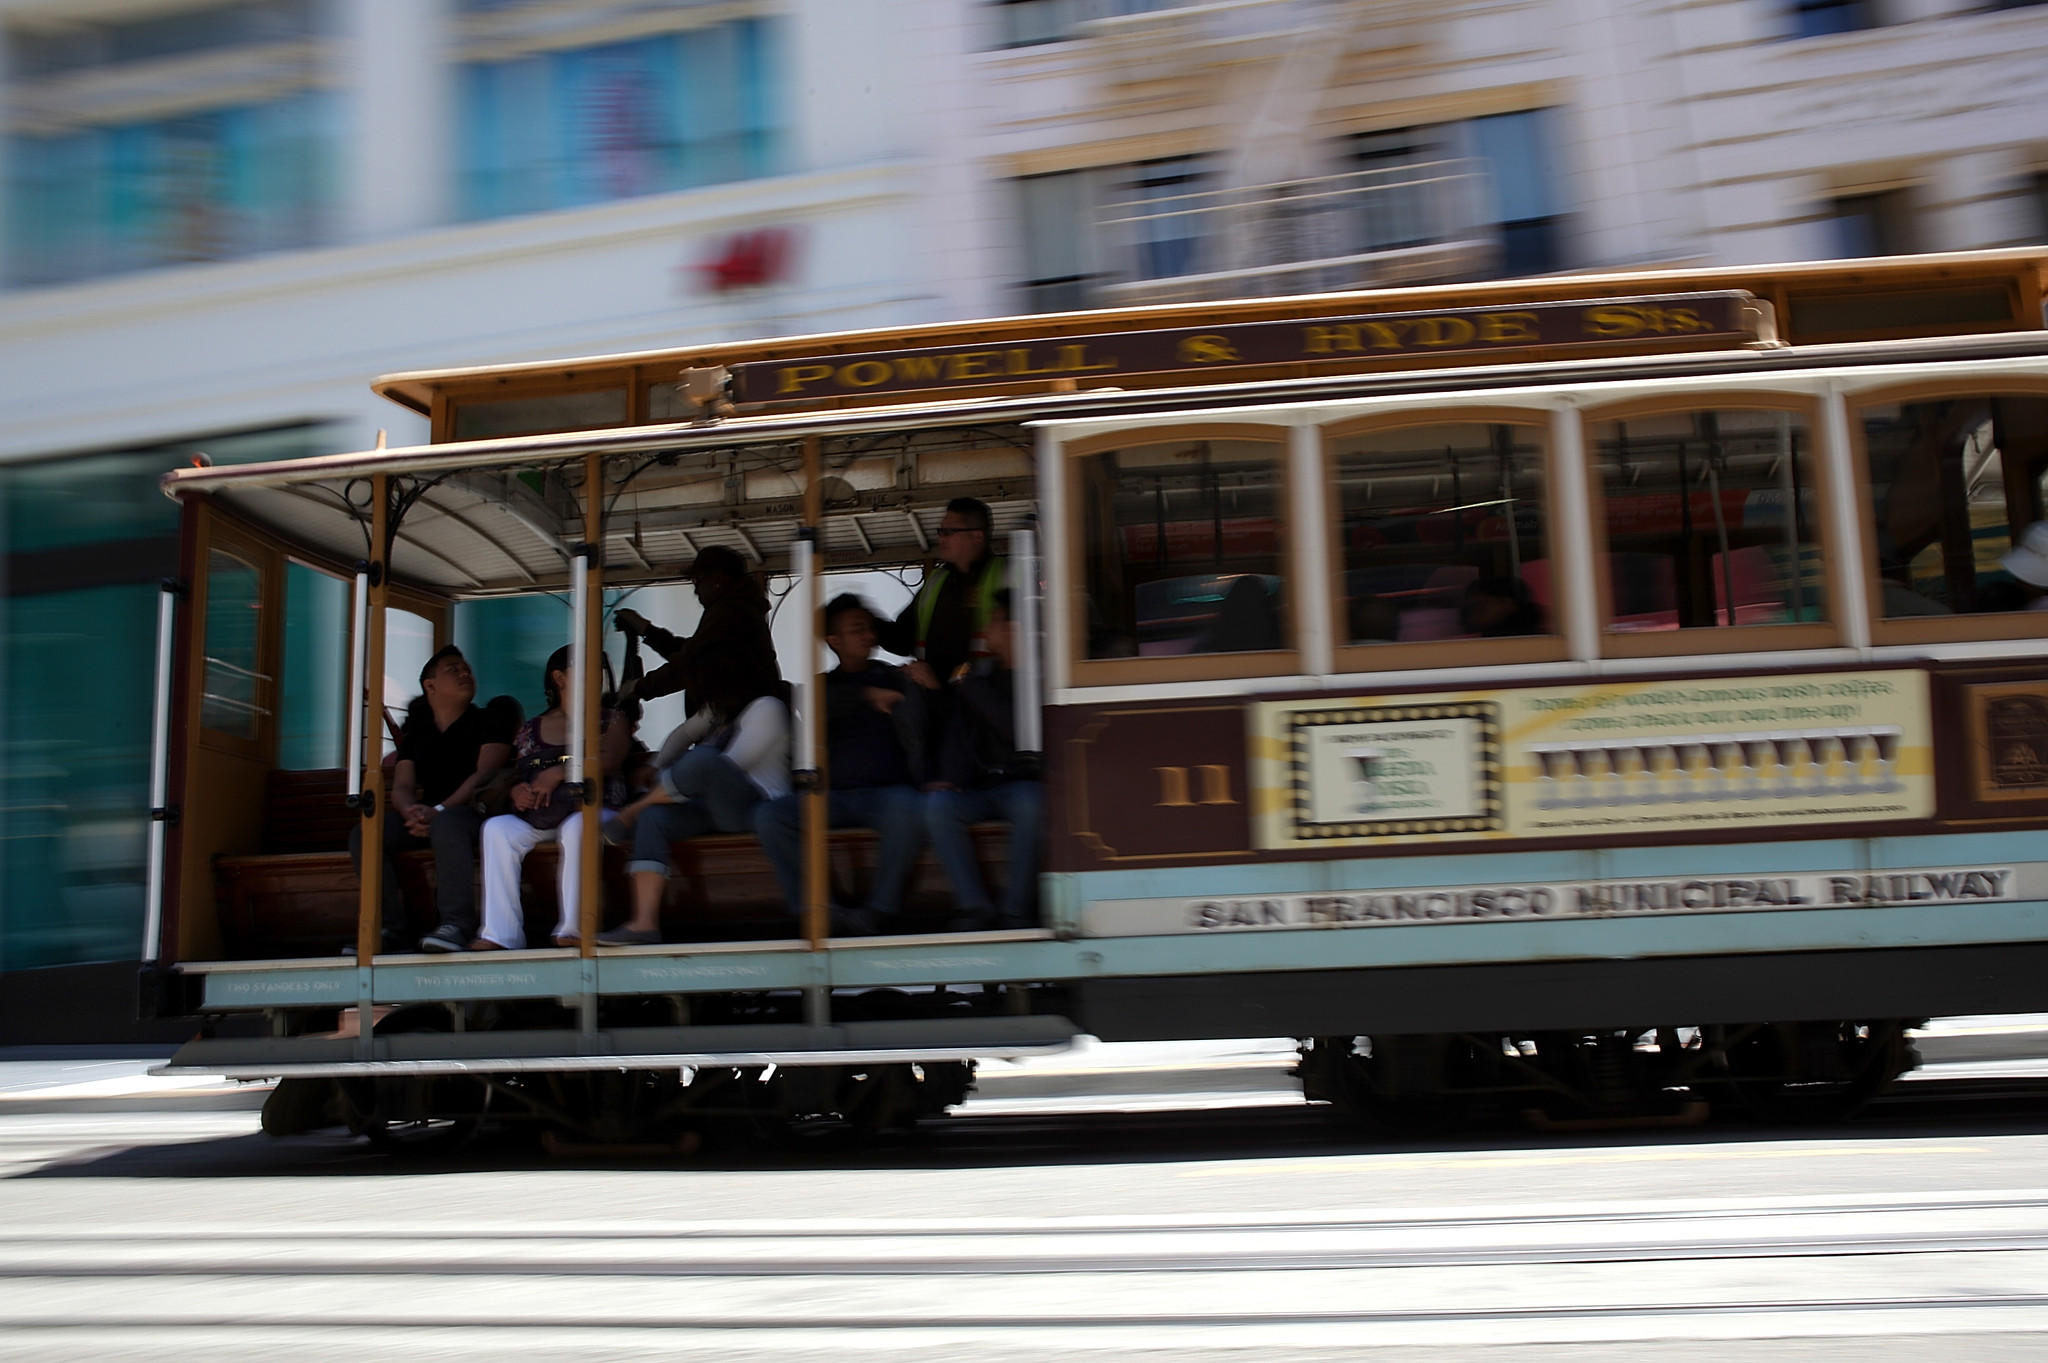 A cable car travels along Powell Street in San Francisco in 2011.